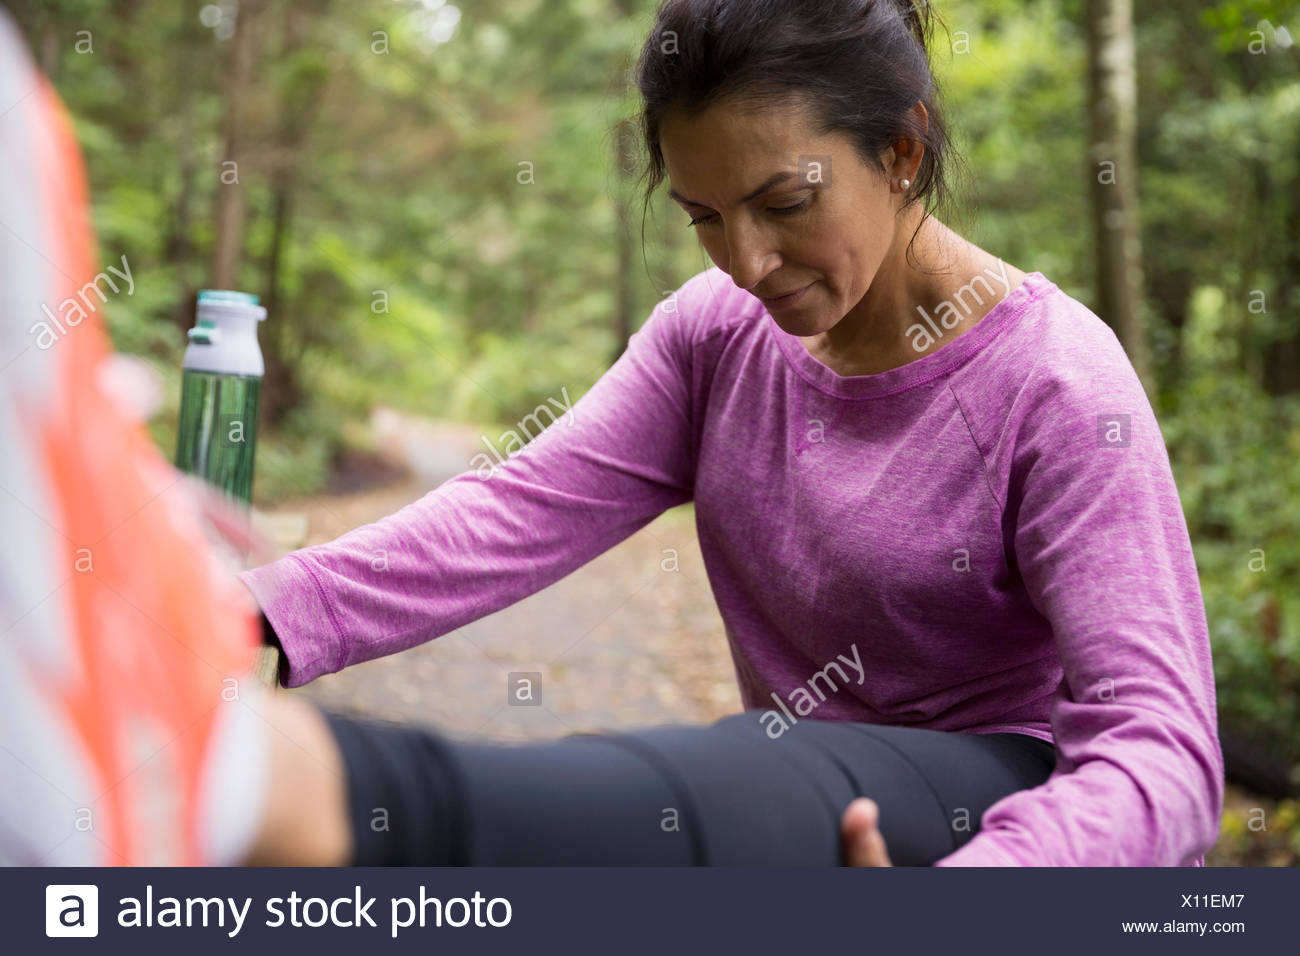 Woman stretching leg preparing for run in woods Stock Photo